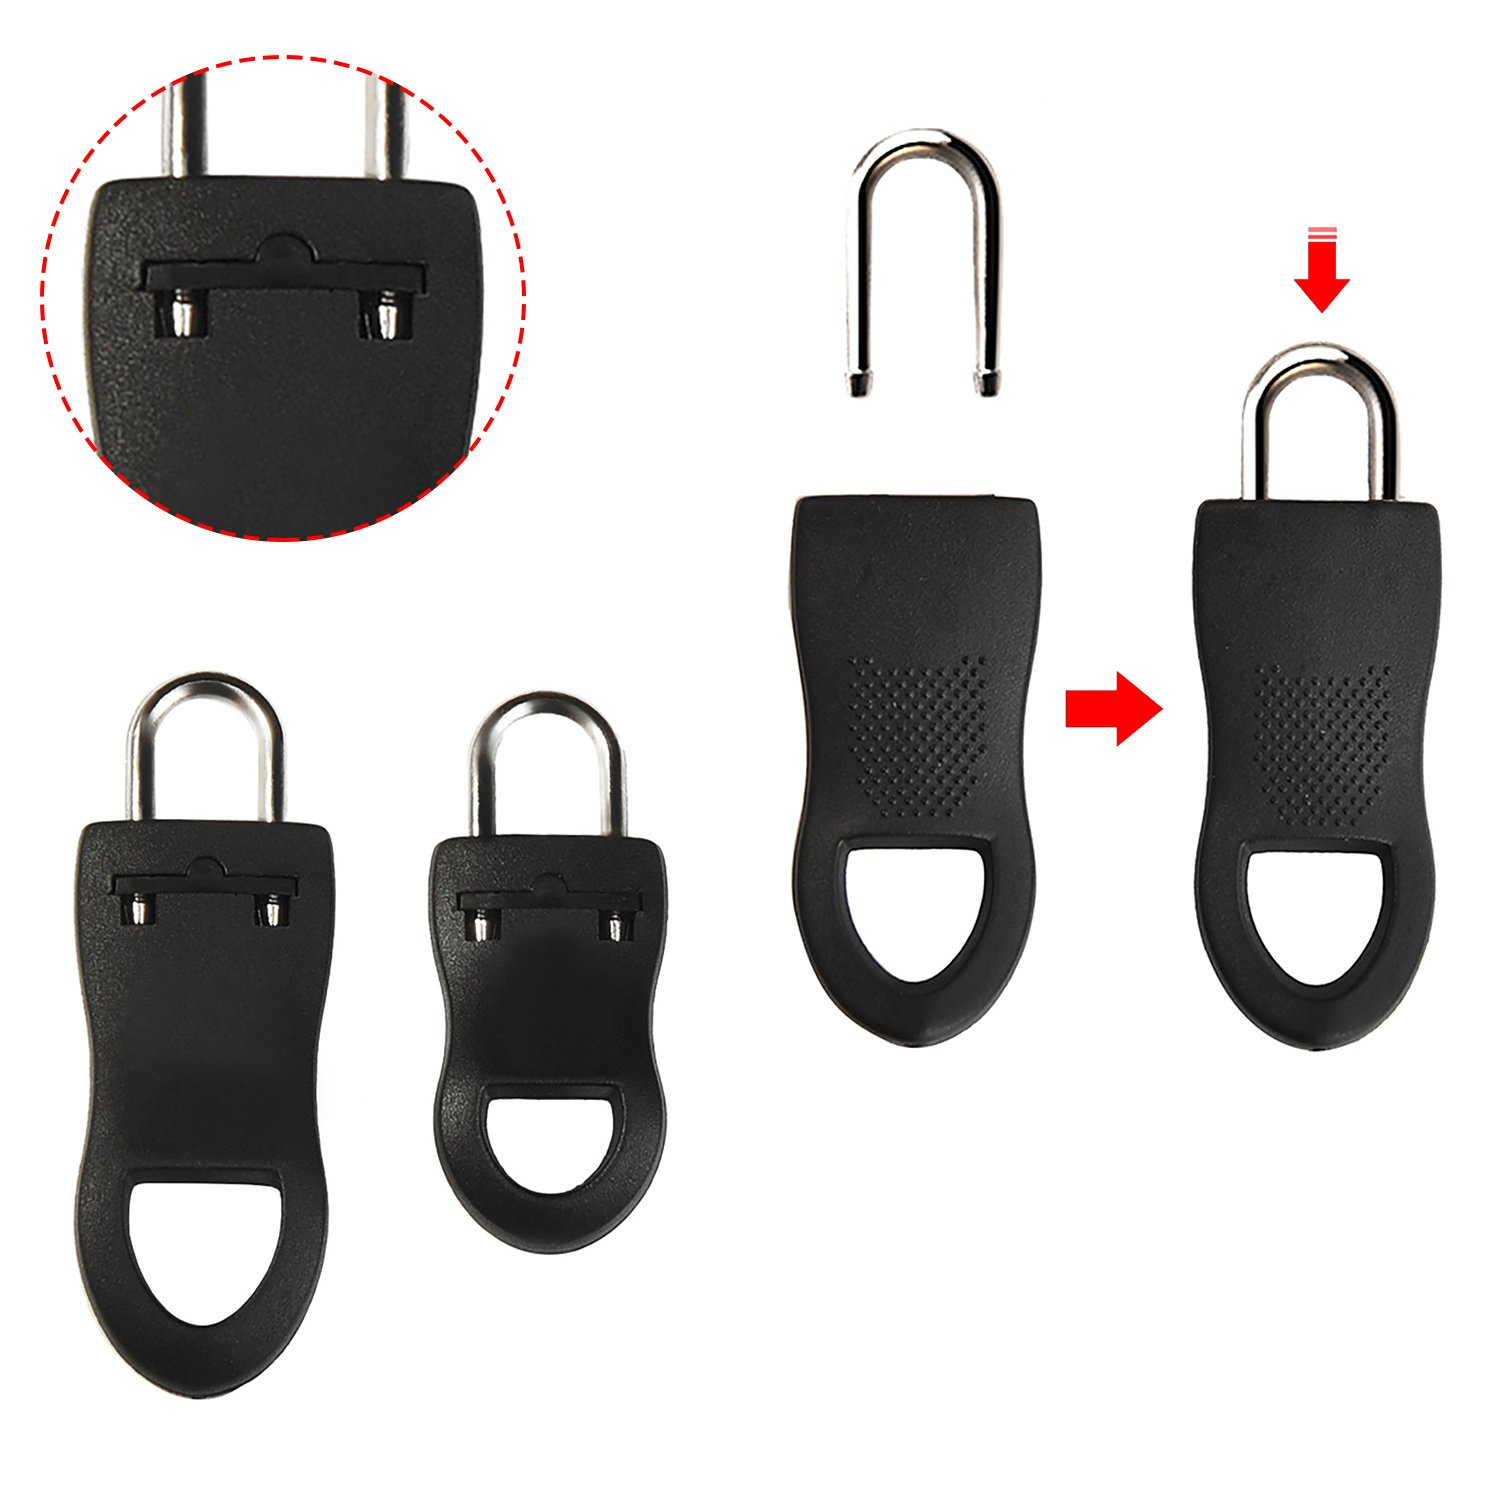 Black Hicarer 48 Pieces Zipper Pulls Zip Fixer Tags Zipper Repair Tabs Replacements for Clothes Bags and Crafts